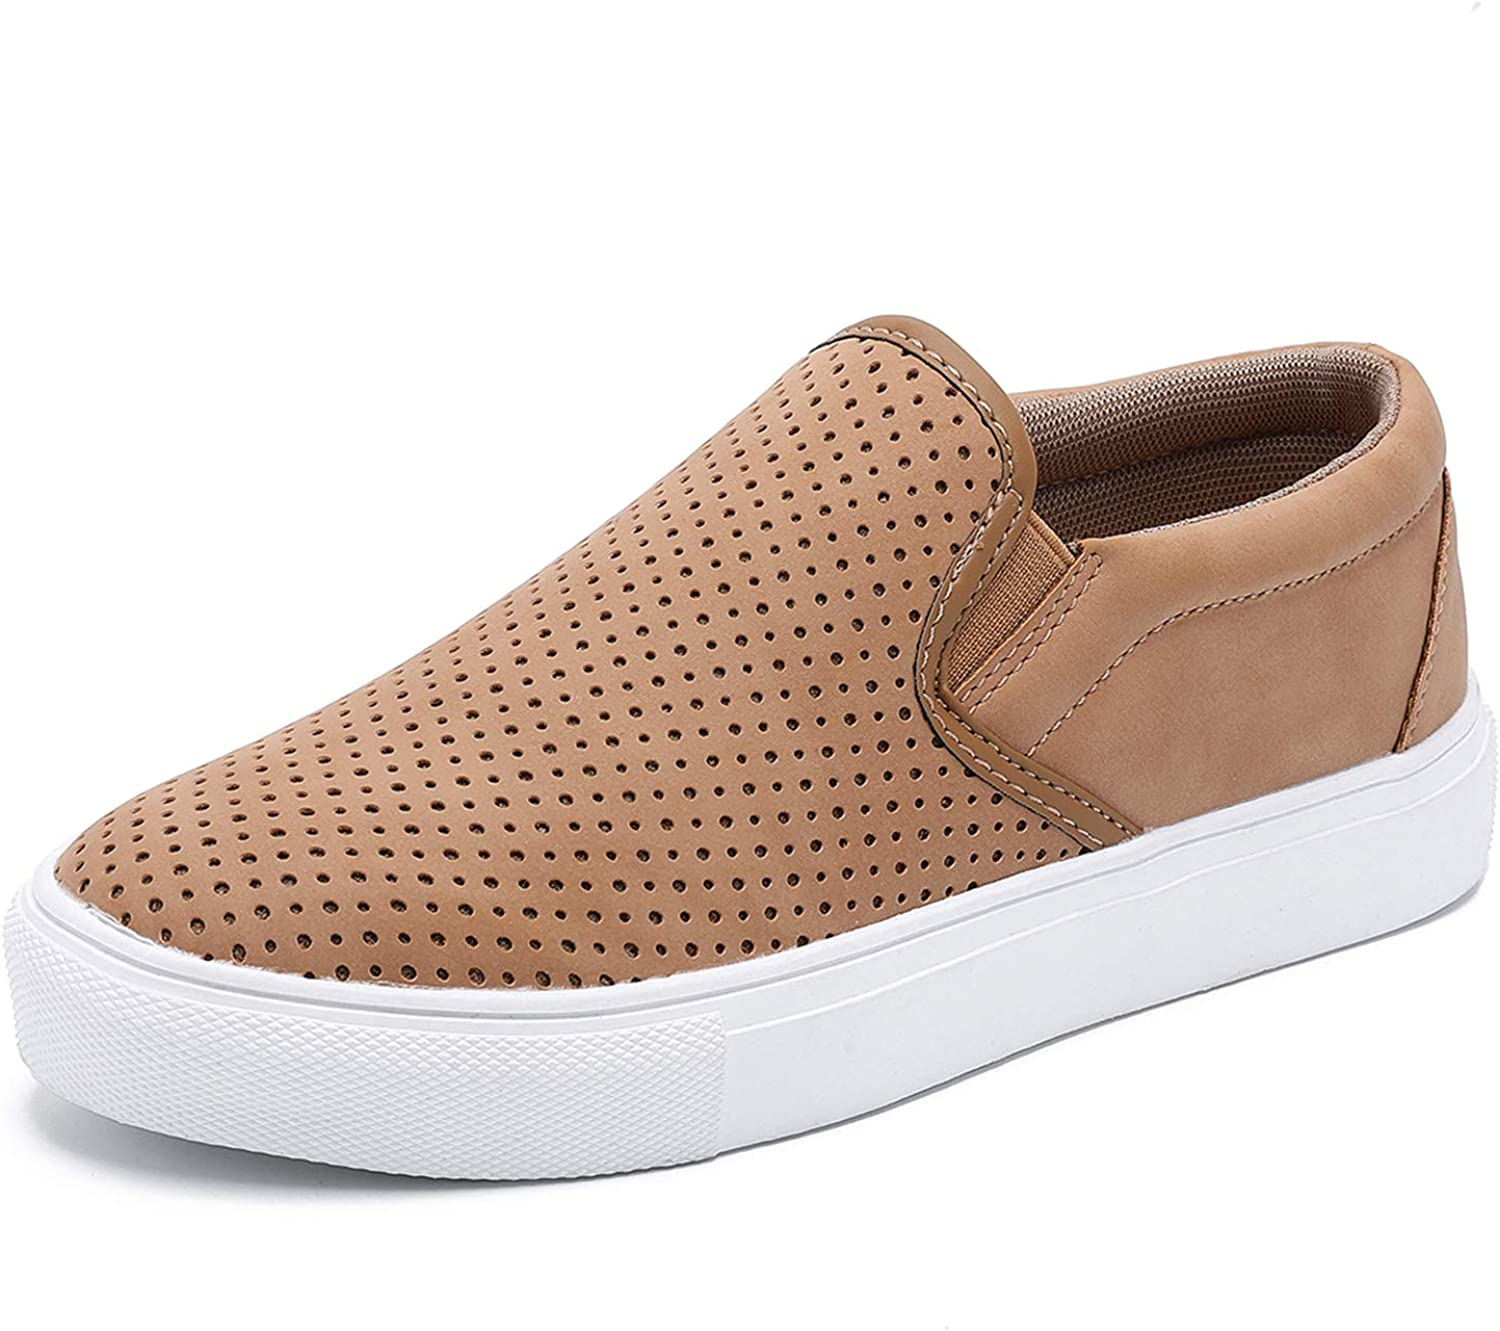 GOUPSKY Slip on Sneakers for Women